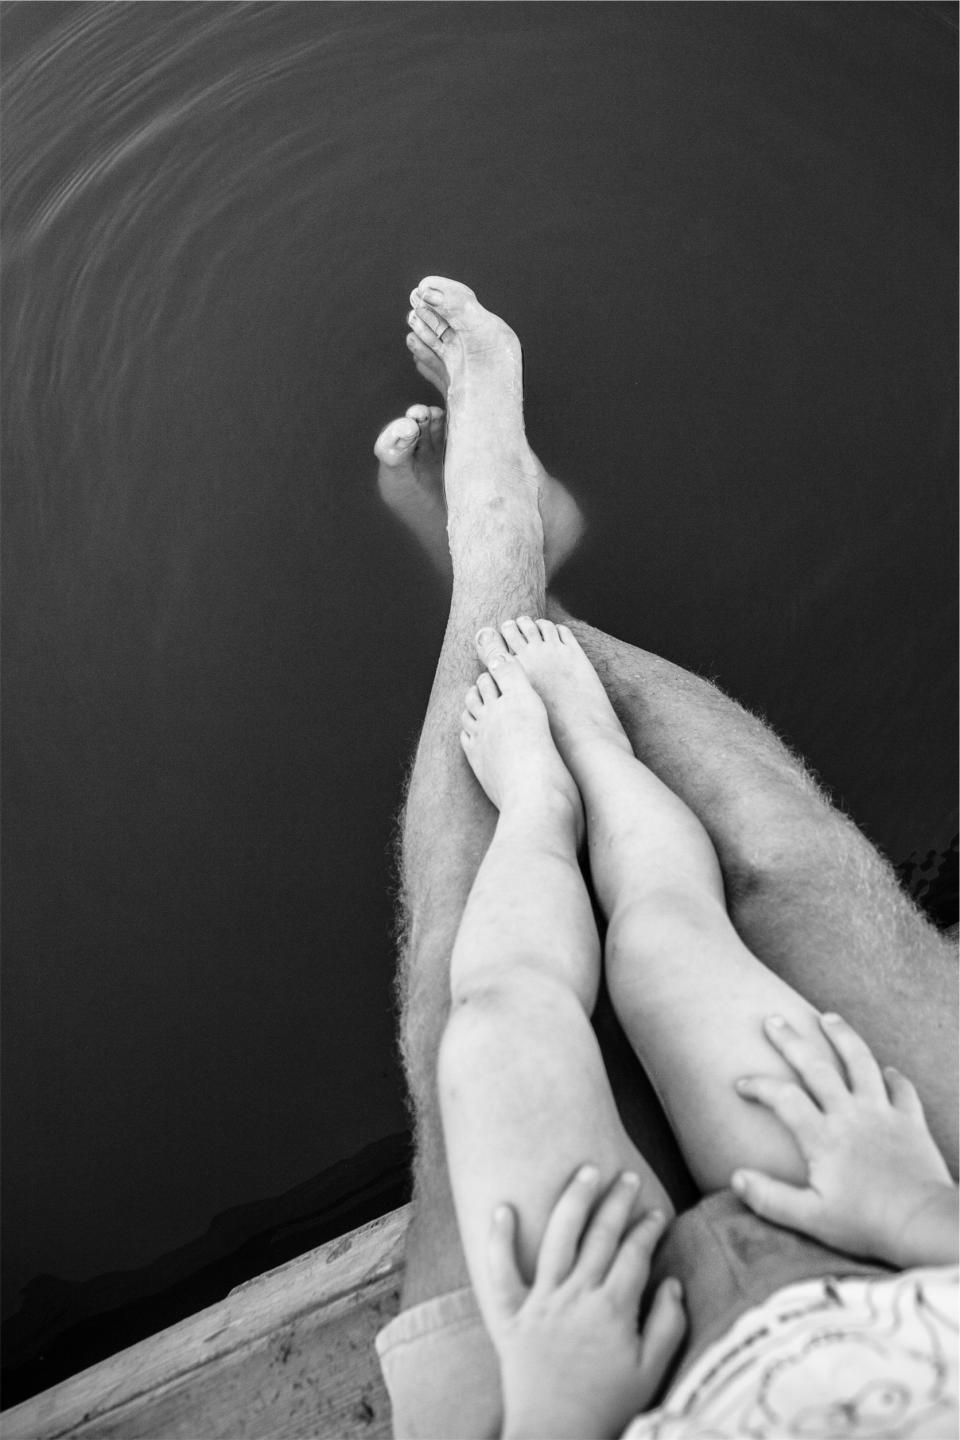 legs, feet, hands, shorts, father, child, kid, parent, water, black and white